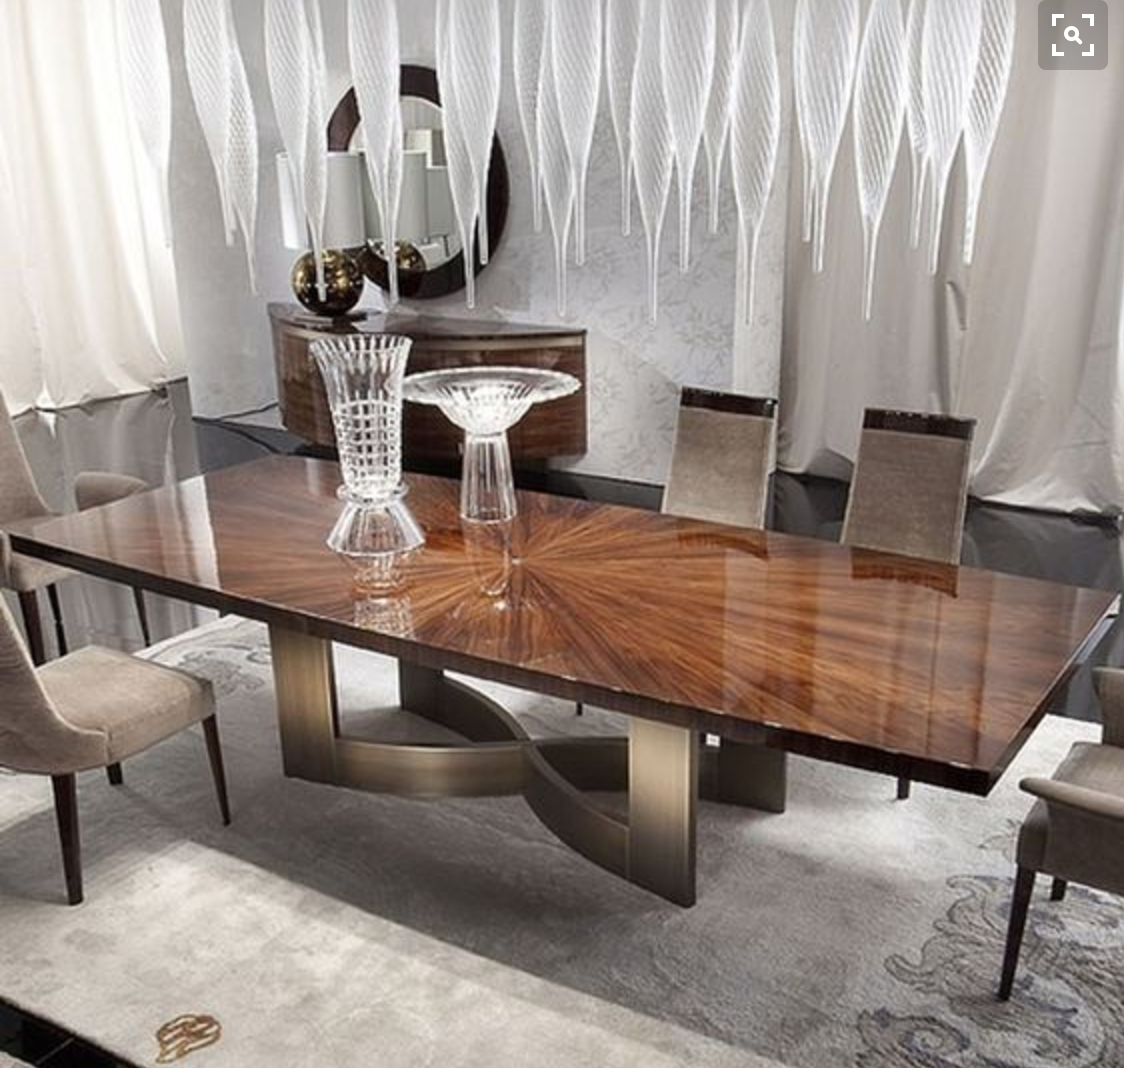 Contemporary Dining Room Table: DINING ROOM: Dining Table Sunburst Detail (Reference) In